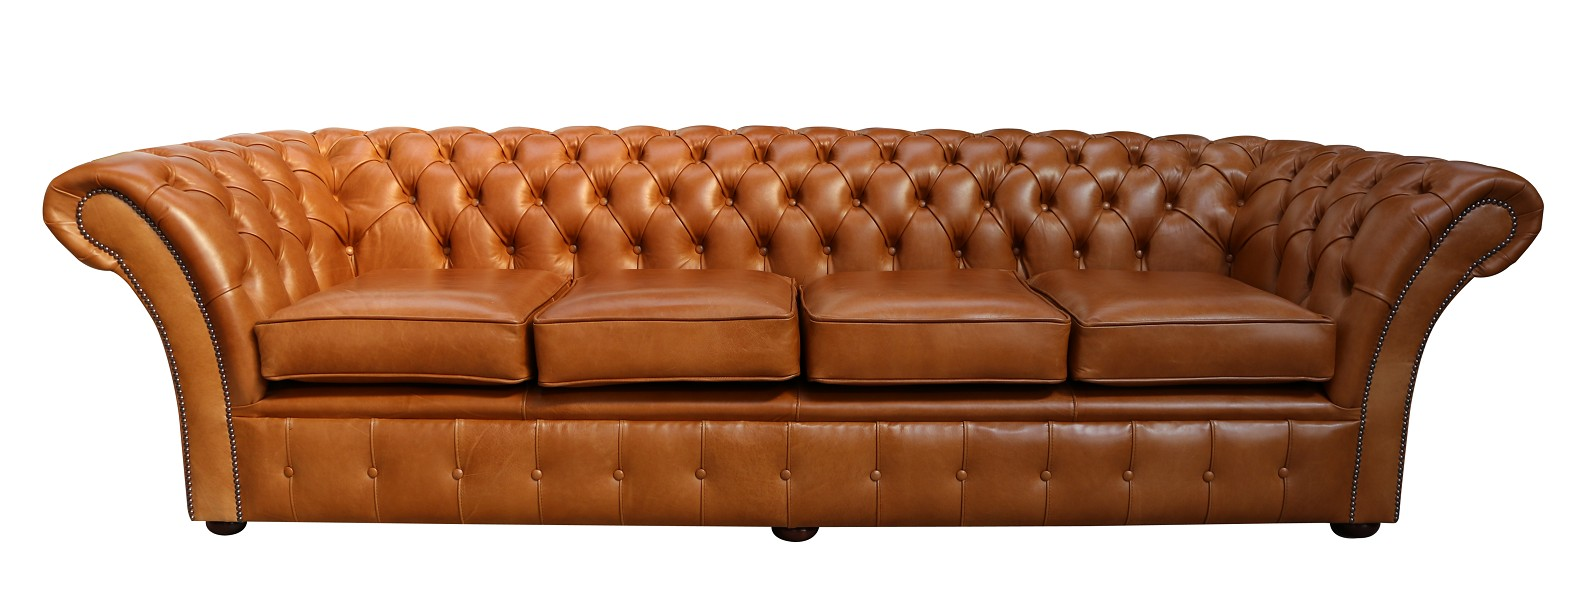 Pleasing Chesterfield Balmoral 4 Seater Sofa Settee Old English Tan Leather Uwap Interior Chair Design Uwaporg